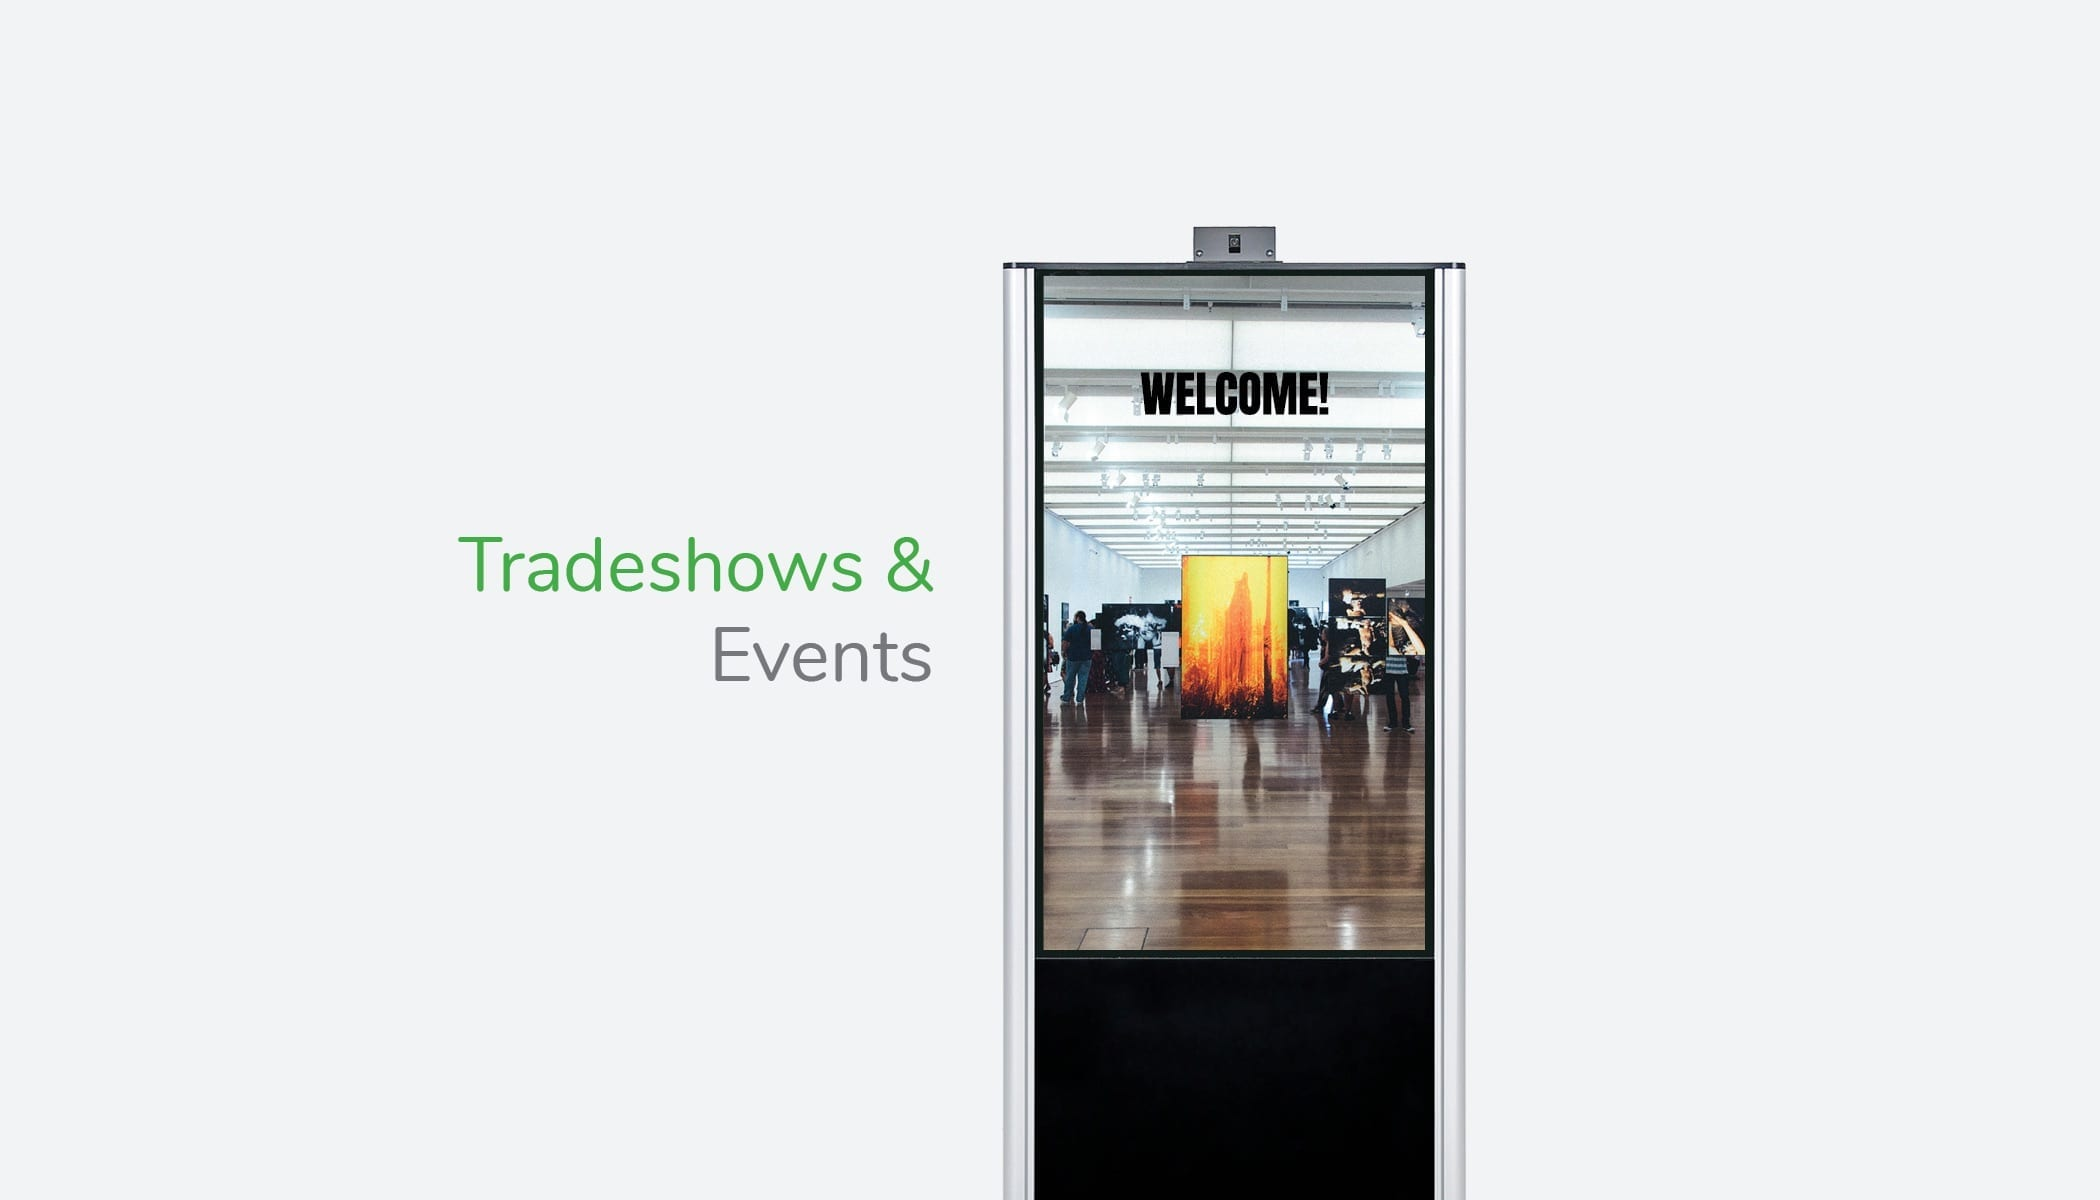 tradeshows-events